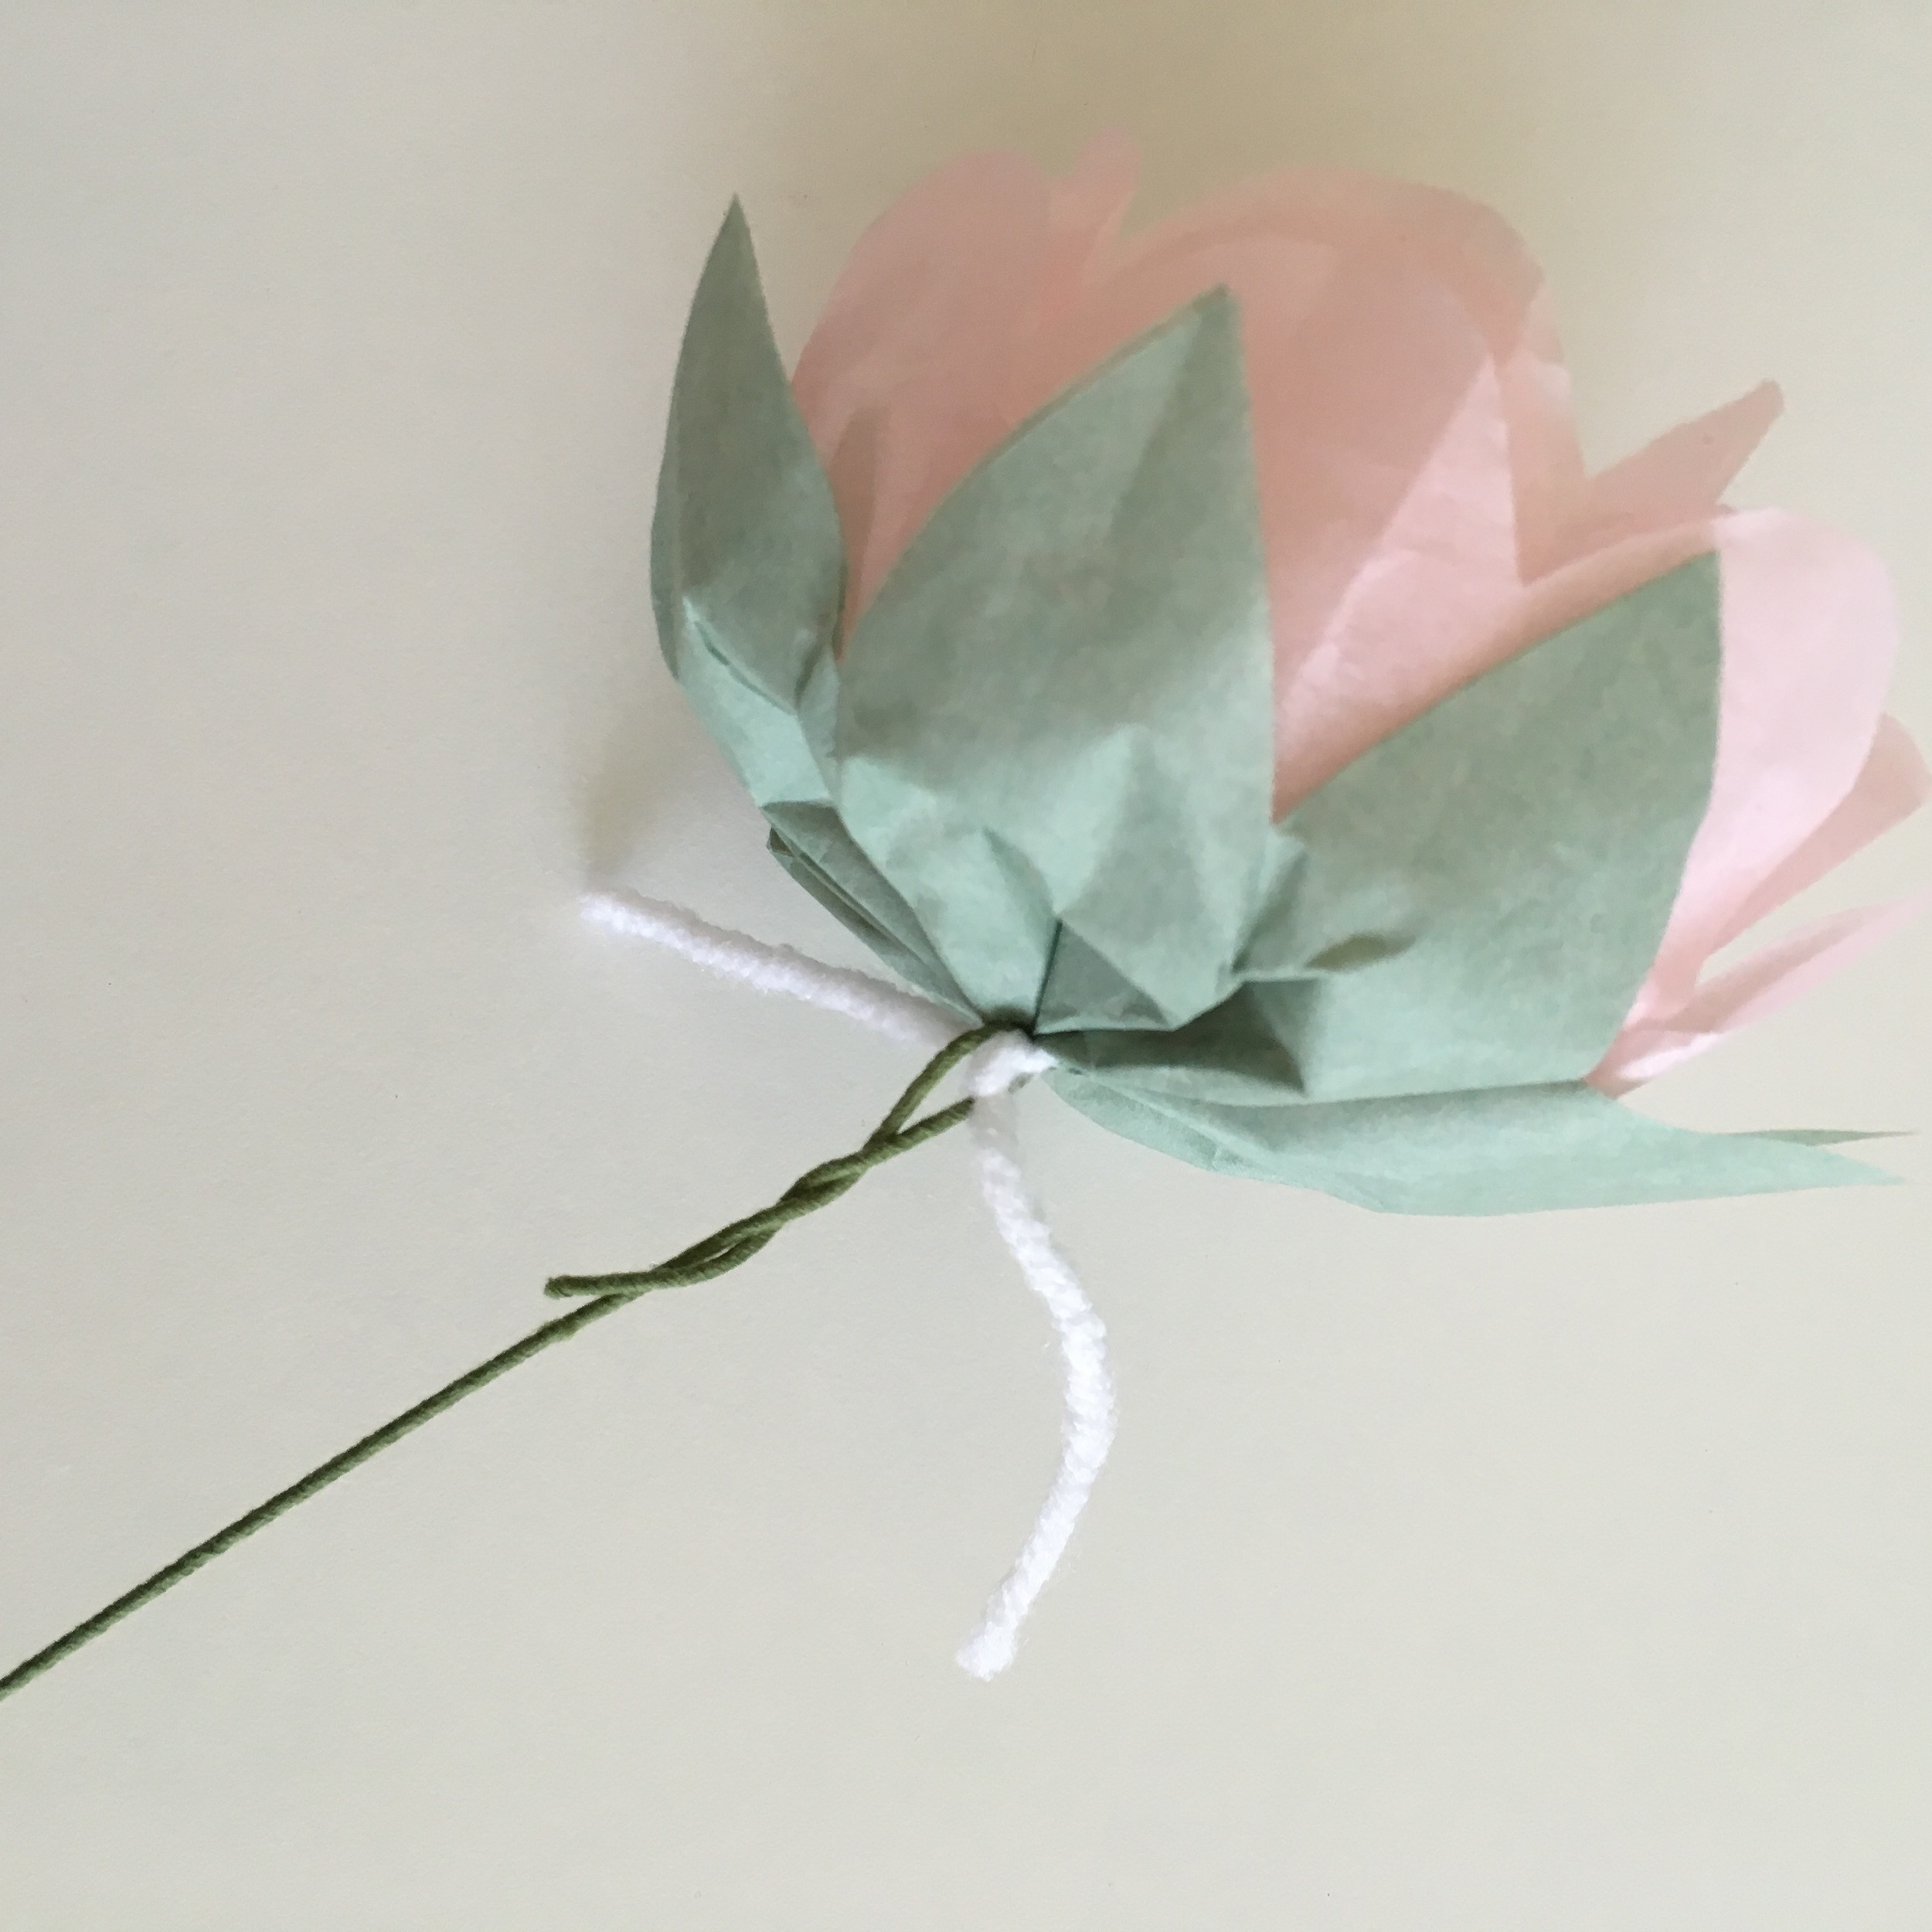 9. Twist the floral wire to secure it.